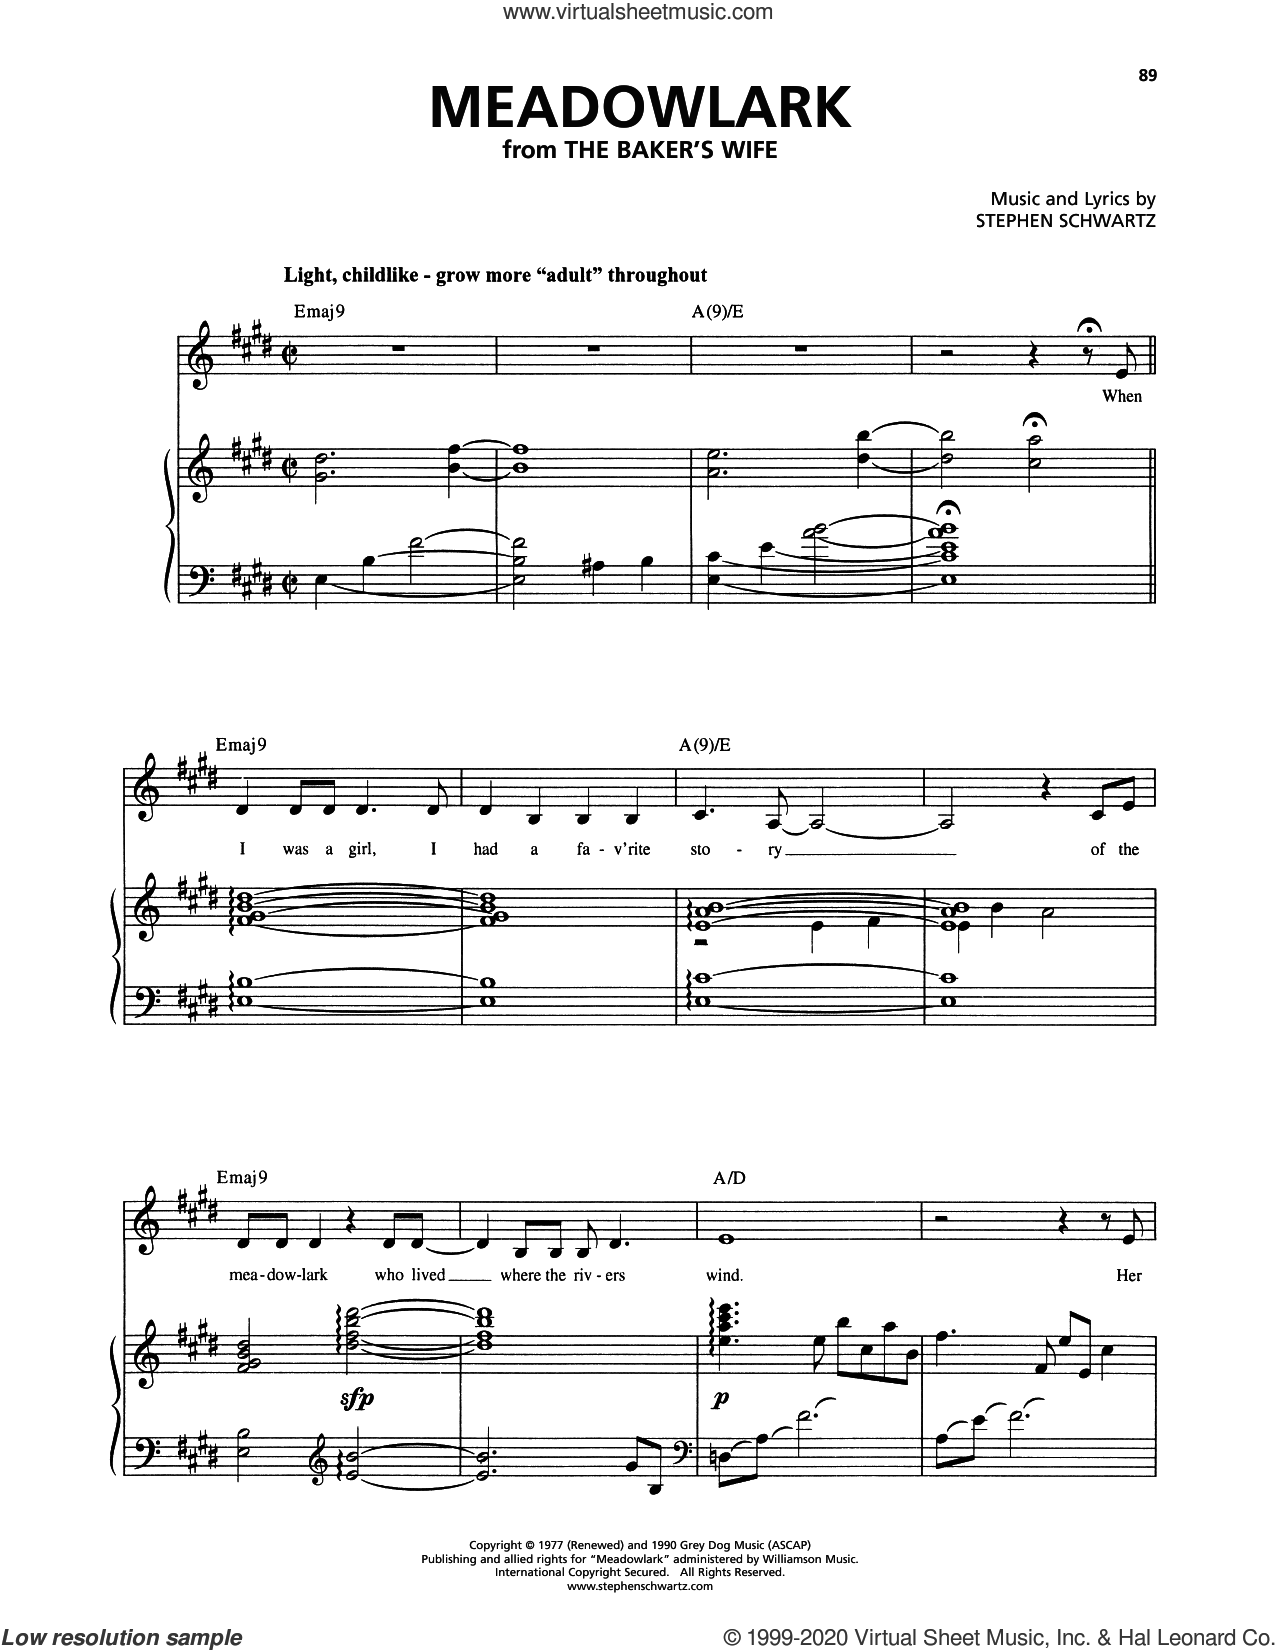 Meadowlark (from The Baker's Wife) sheet music for voice and piano by Stephen Schwartz, intermediate skill level